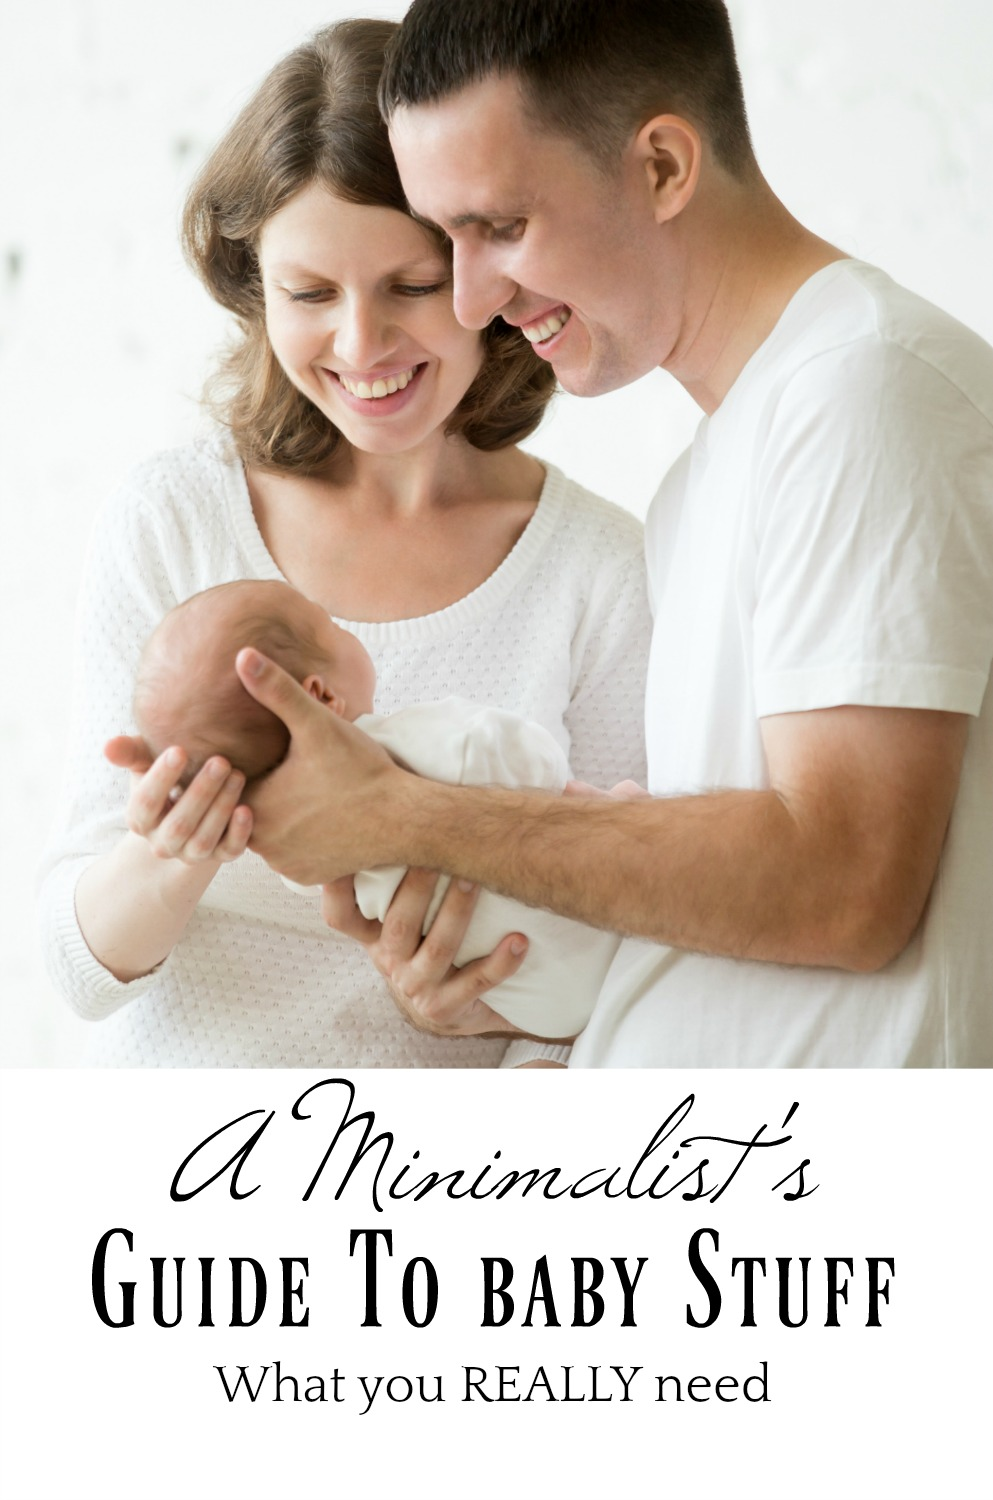 A minimalist baby registry - What you really need and use when baby comes home